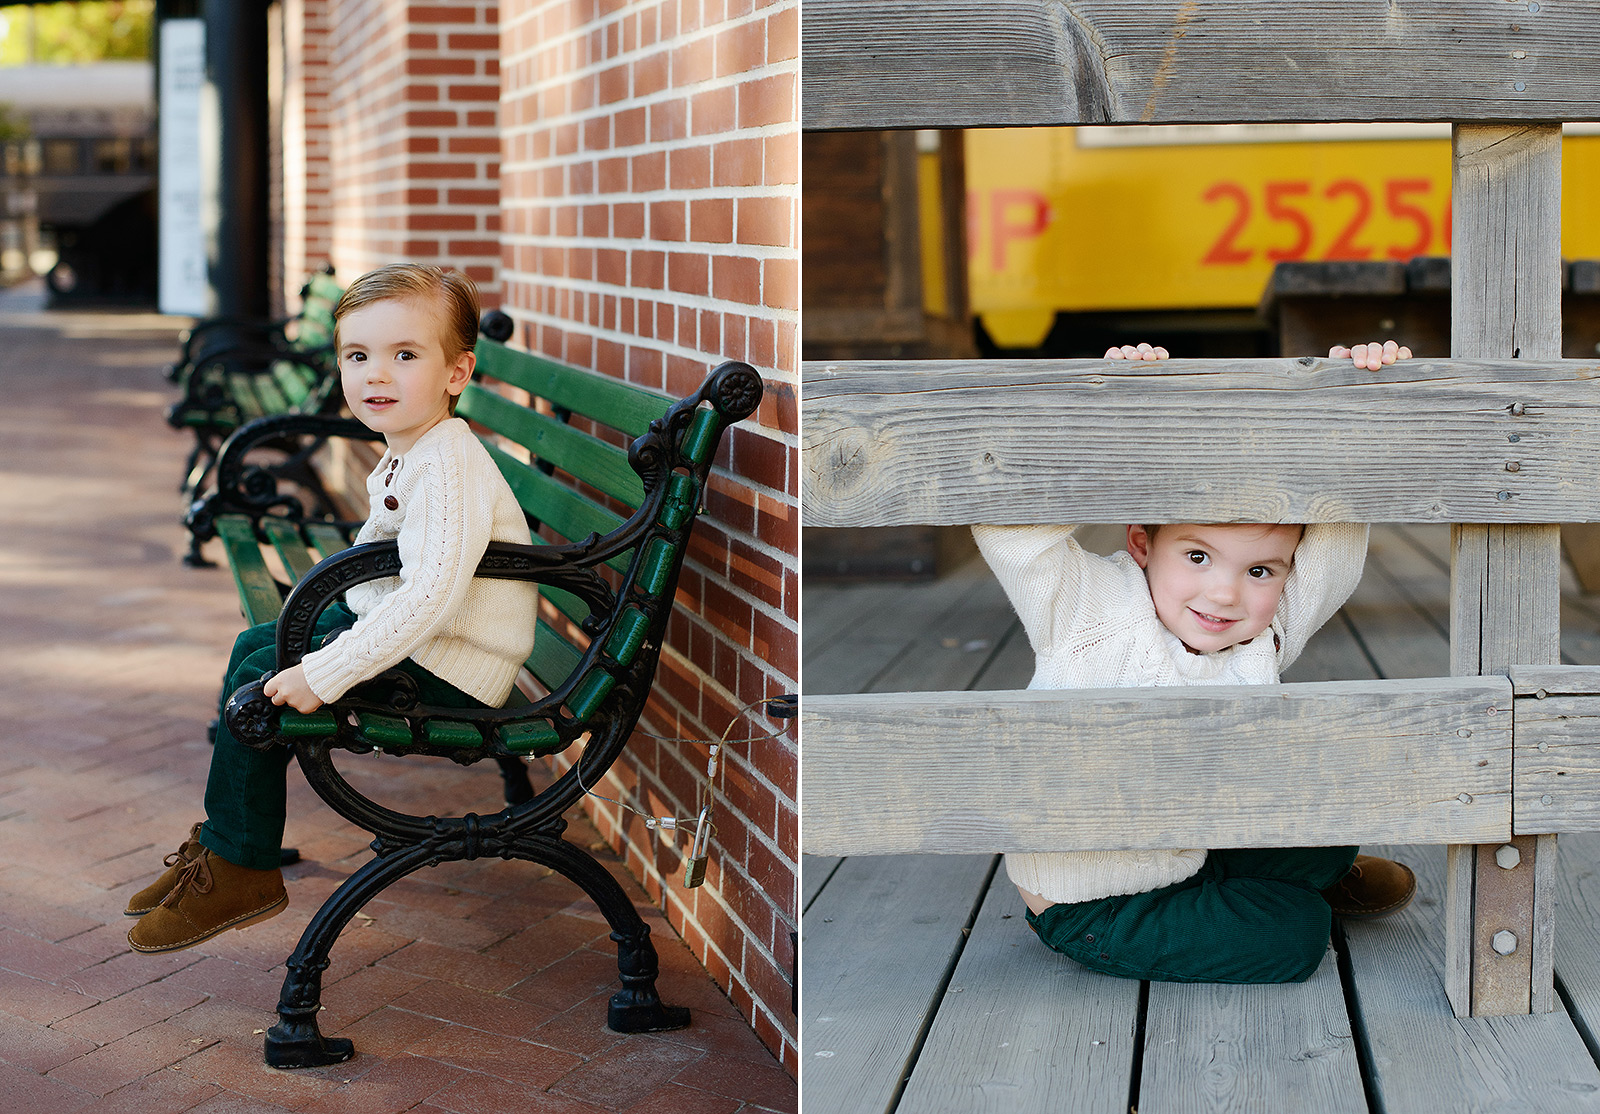 Boy Playing Peekaboo on Fence and Sitting on Green Bench in Old Sacramento